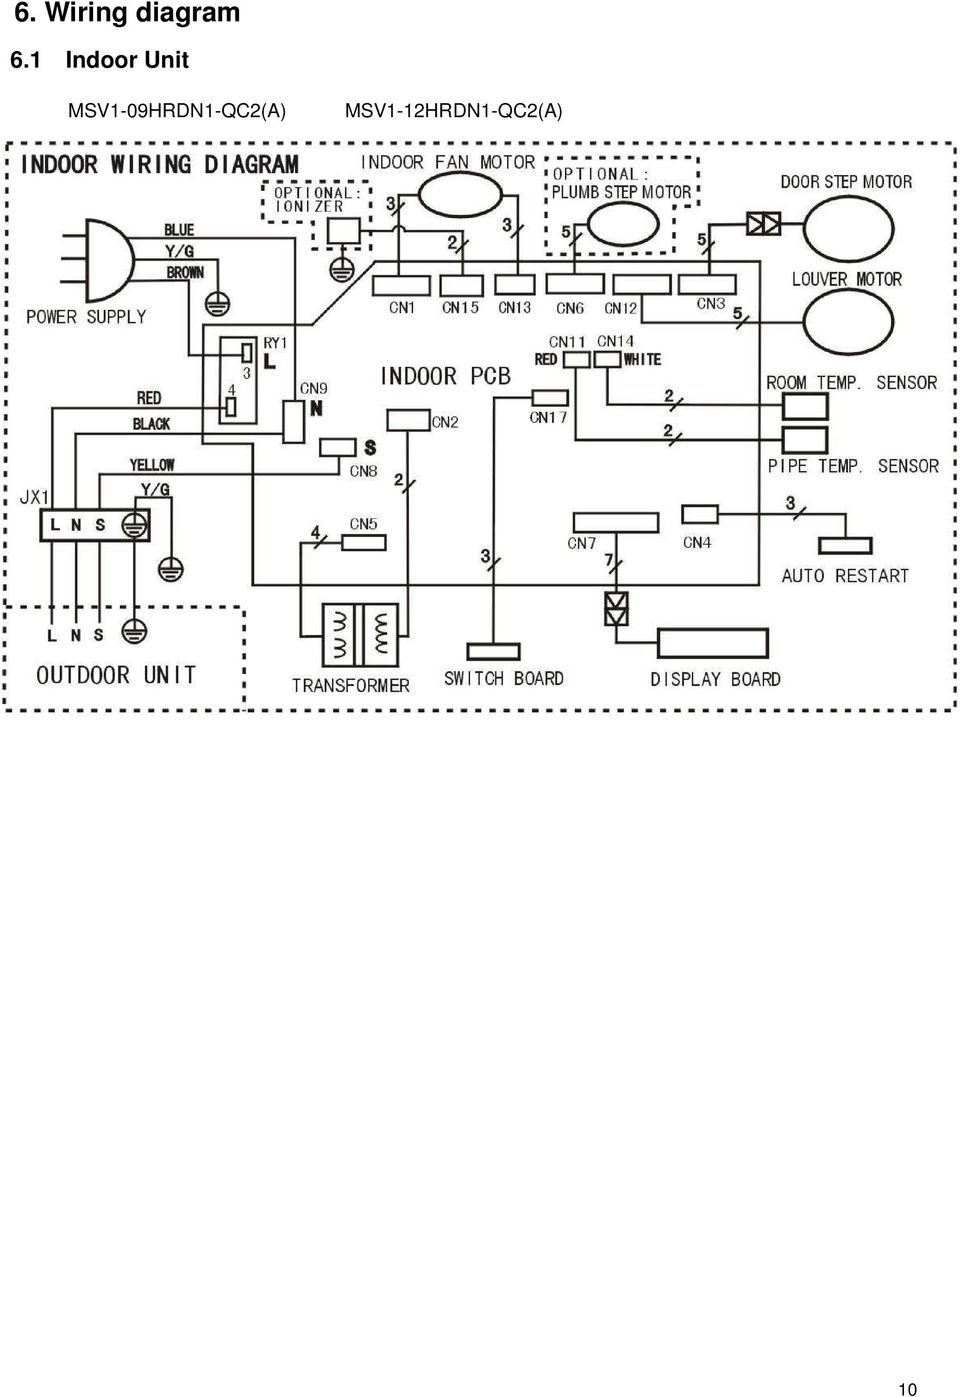 hight resolution of midea wiring diagram wiring diagram forward midea wiring diagram midea mini split wiring diagram wiring diagrams